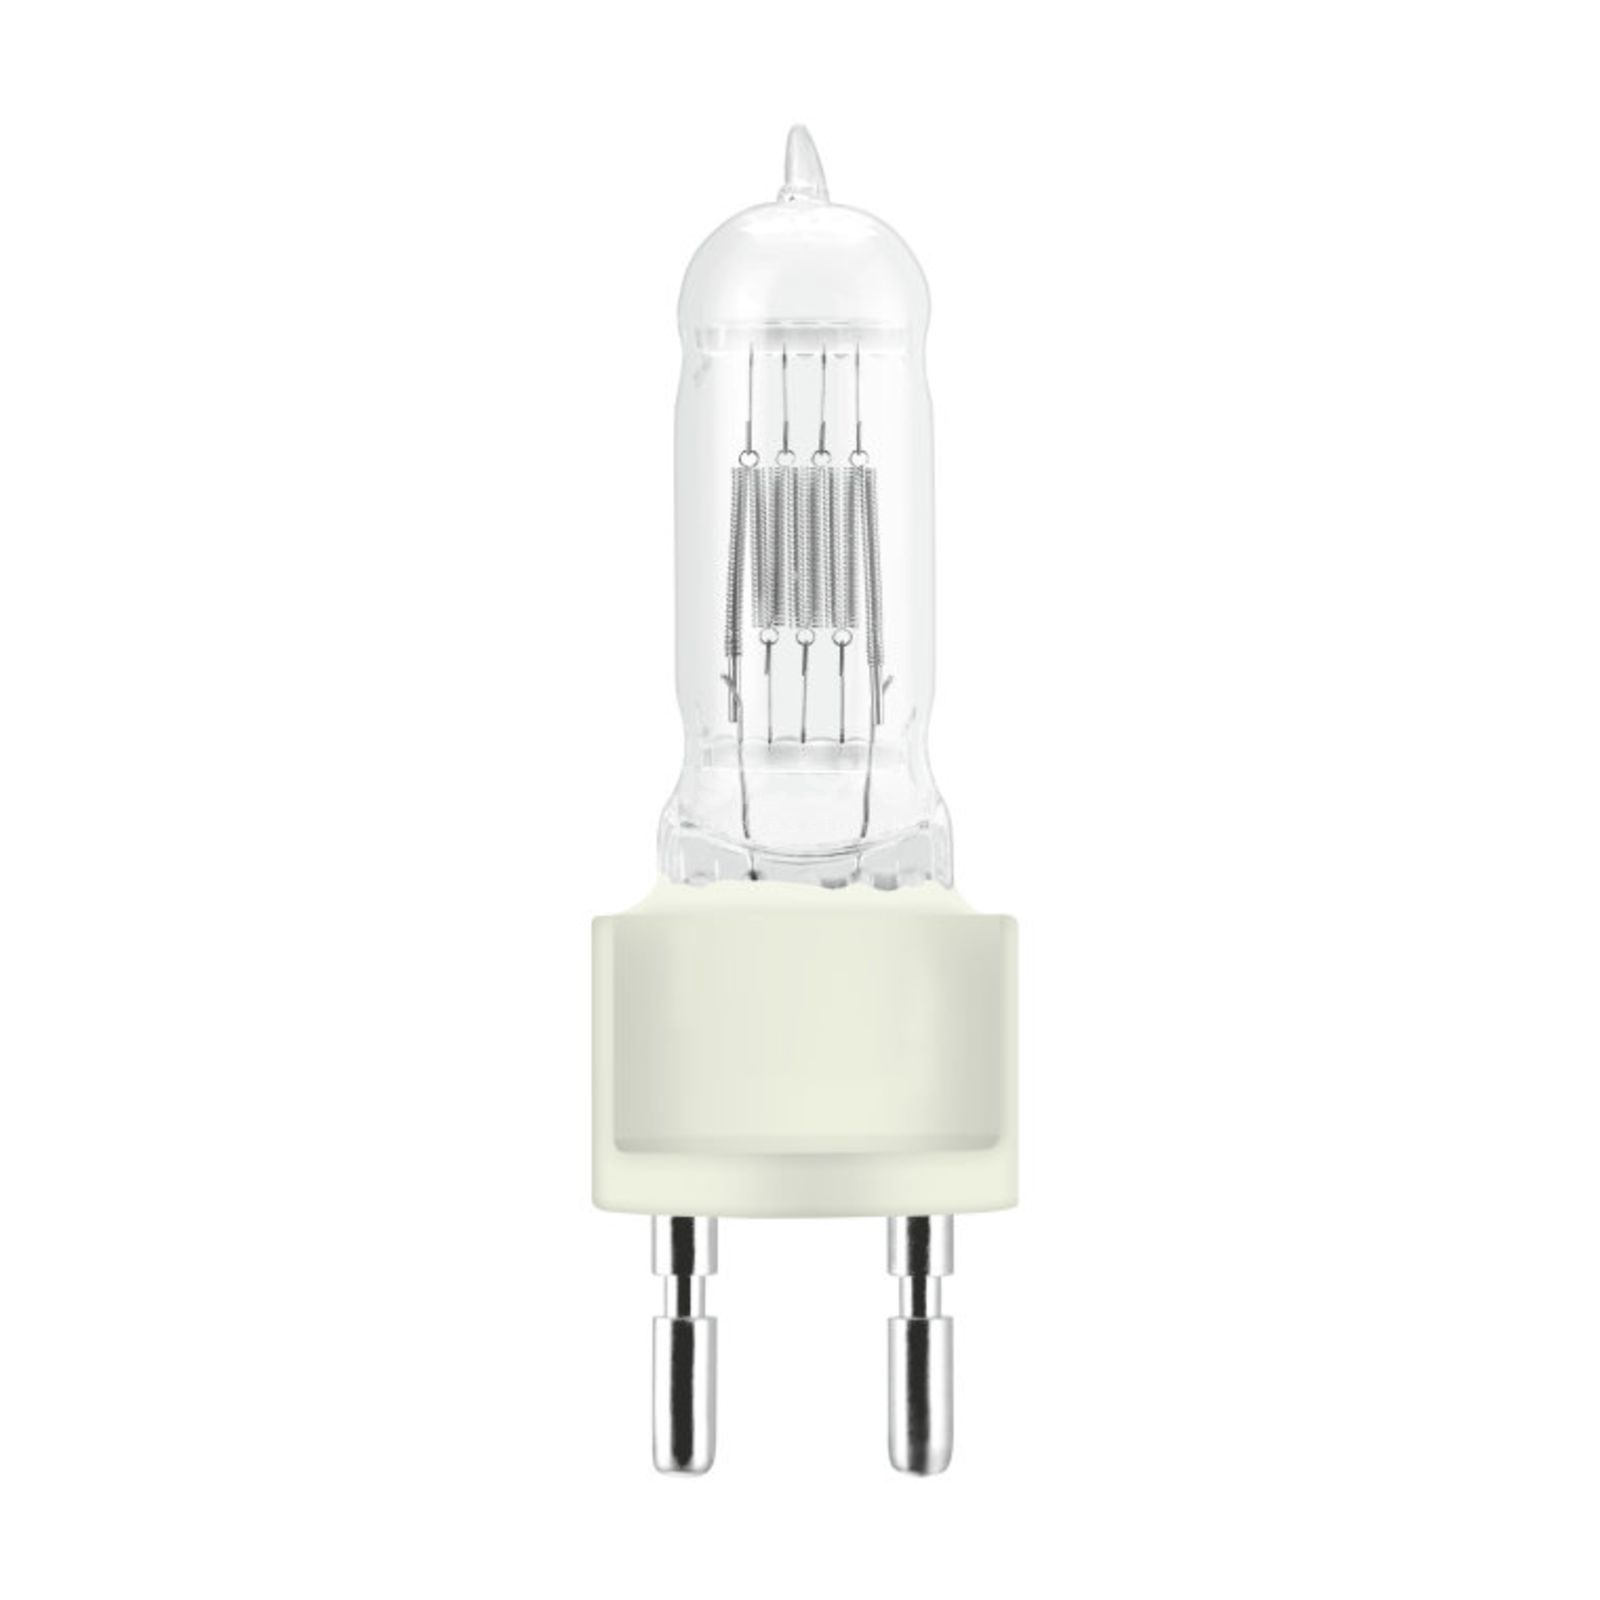 Osram CP71 FKJ 1.000W 240V G22 Halogen Lamp Product Image